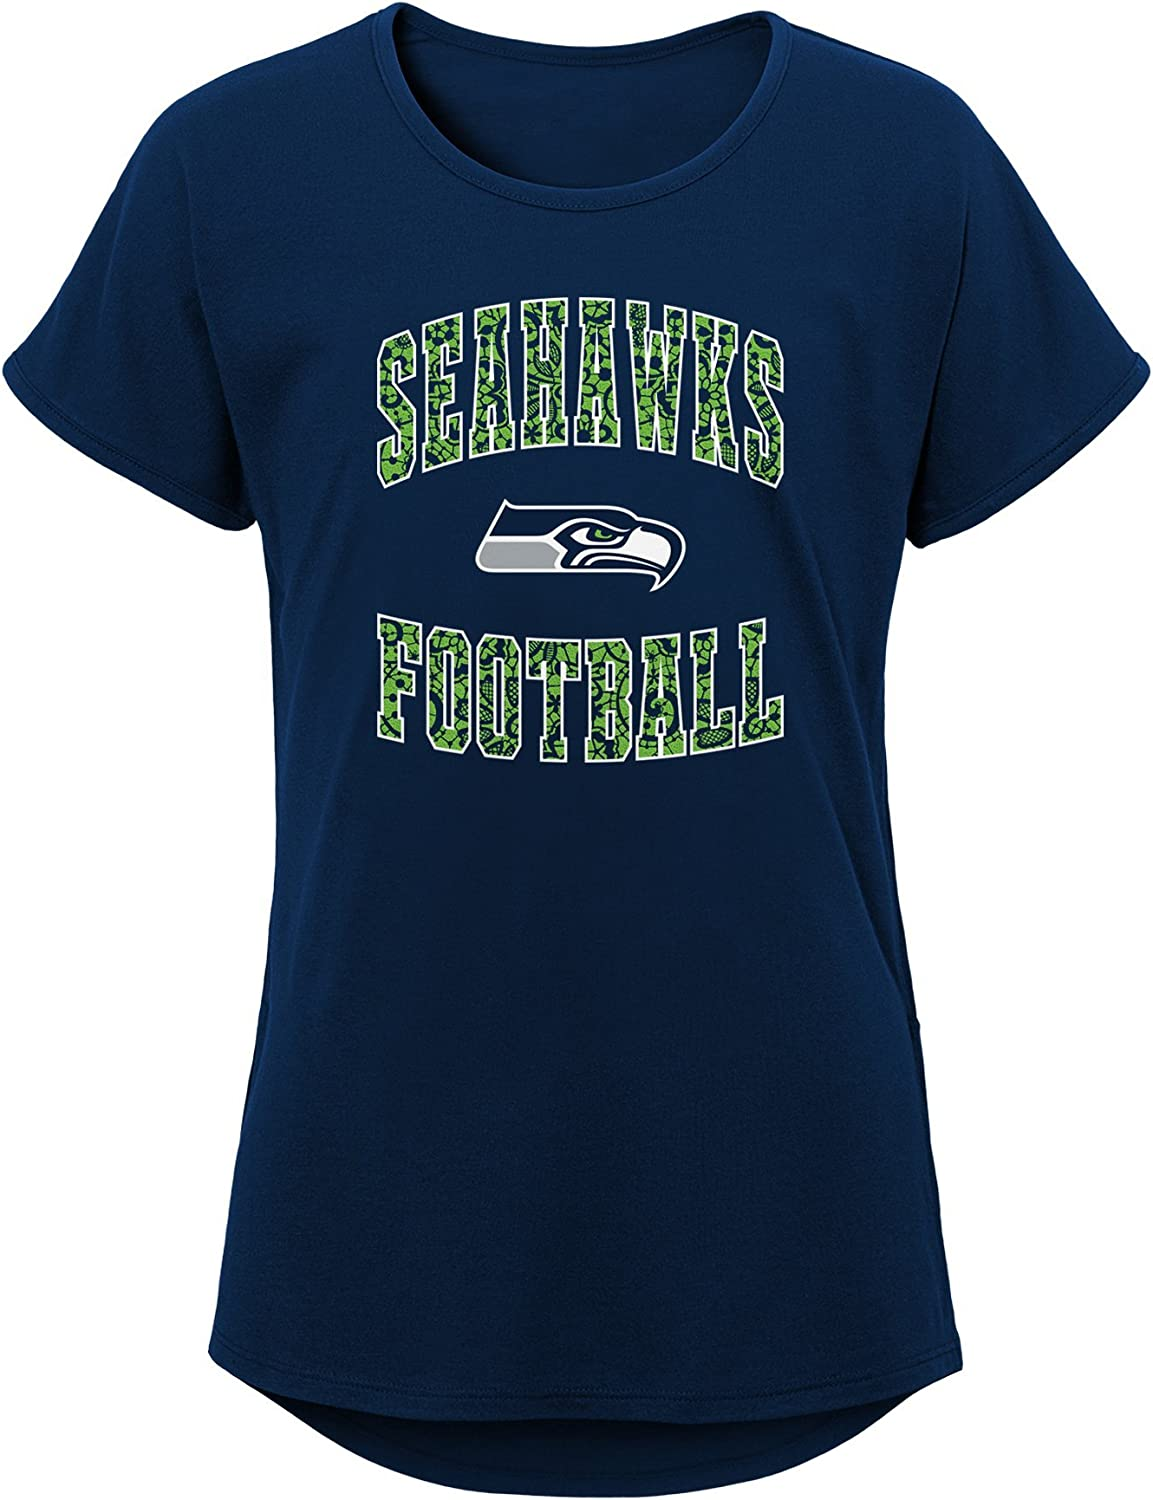 16 Outerstuff NFL NFL Seattle Seahawks Youth Girls Goal Line Short Sleeve Tri-Blend Tee Navy Youth X-Large